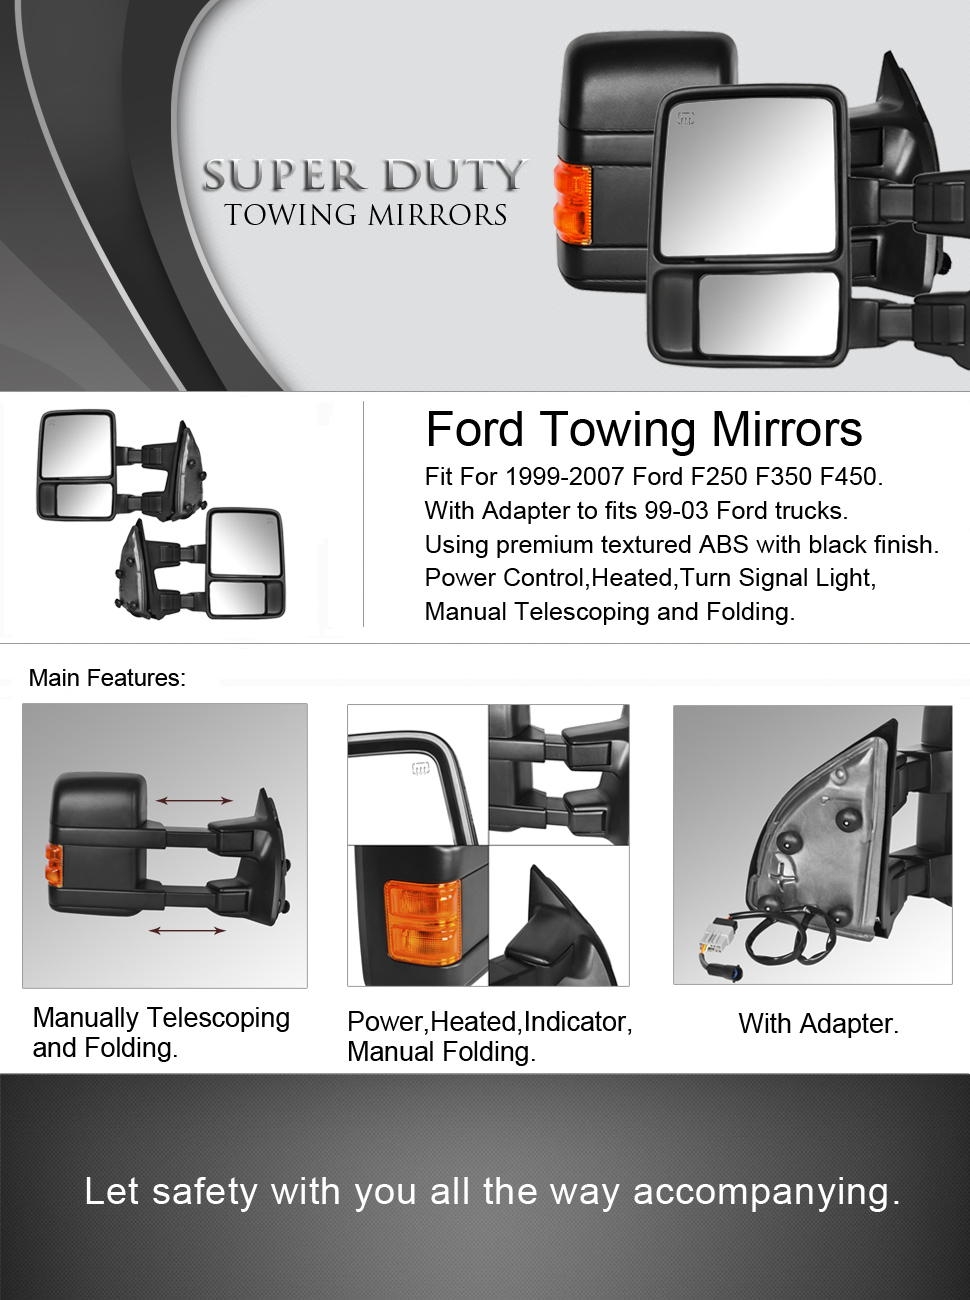 3e4EMyExQyWq._UX970_TTW_ amazon com dedc ford towing mirrors f250 ford tow mirrors f350 Dodge Truck Leather at gsmx.co